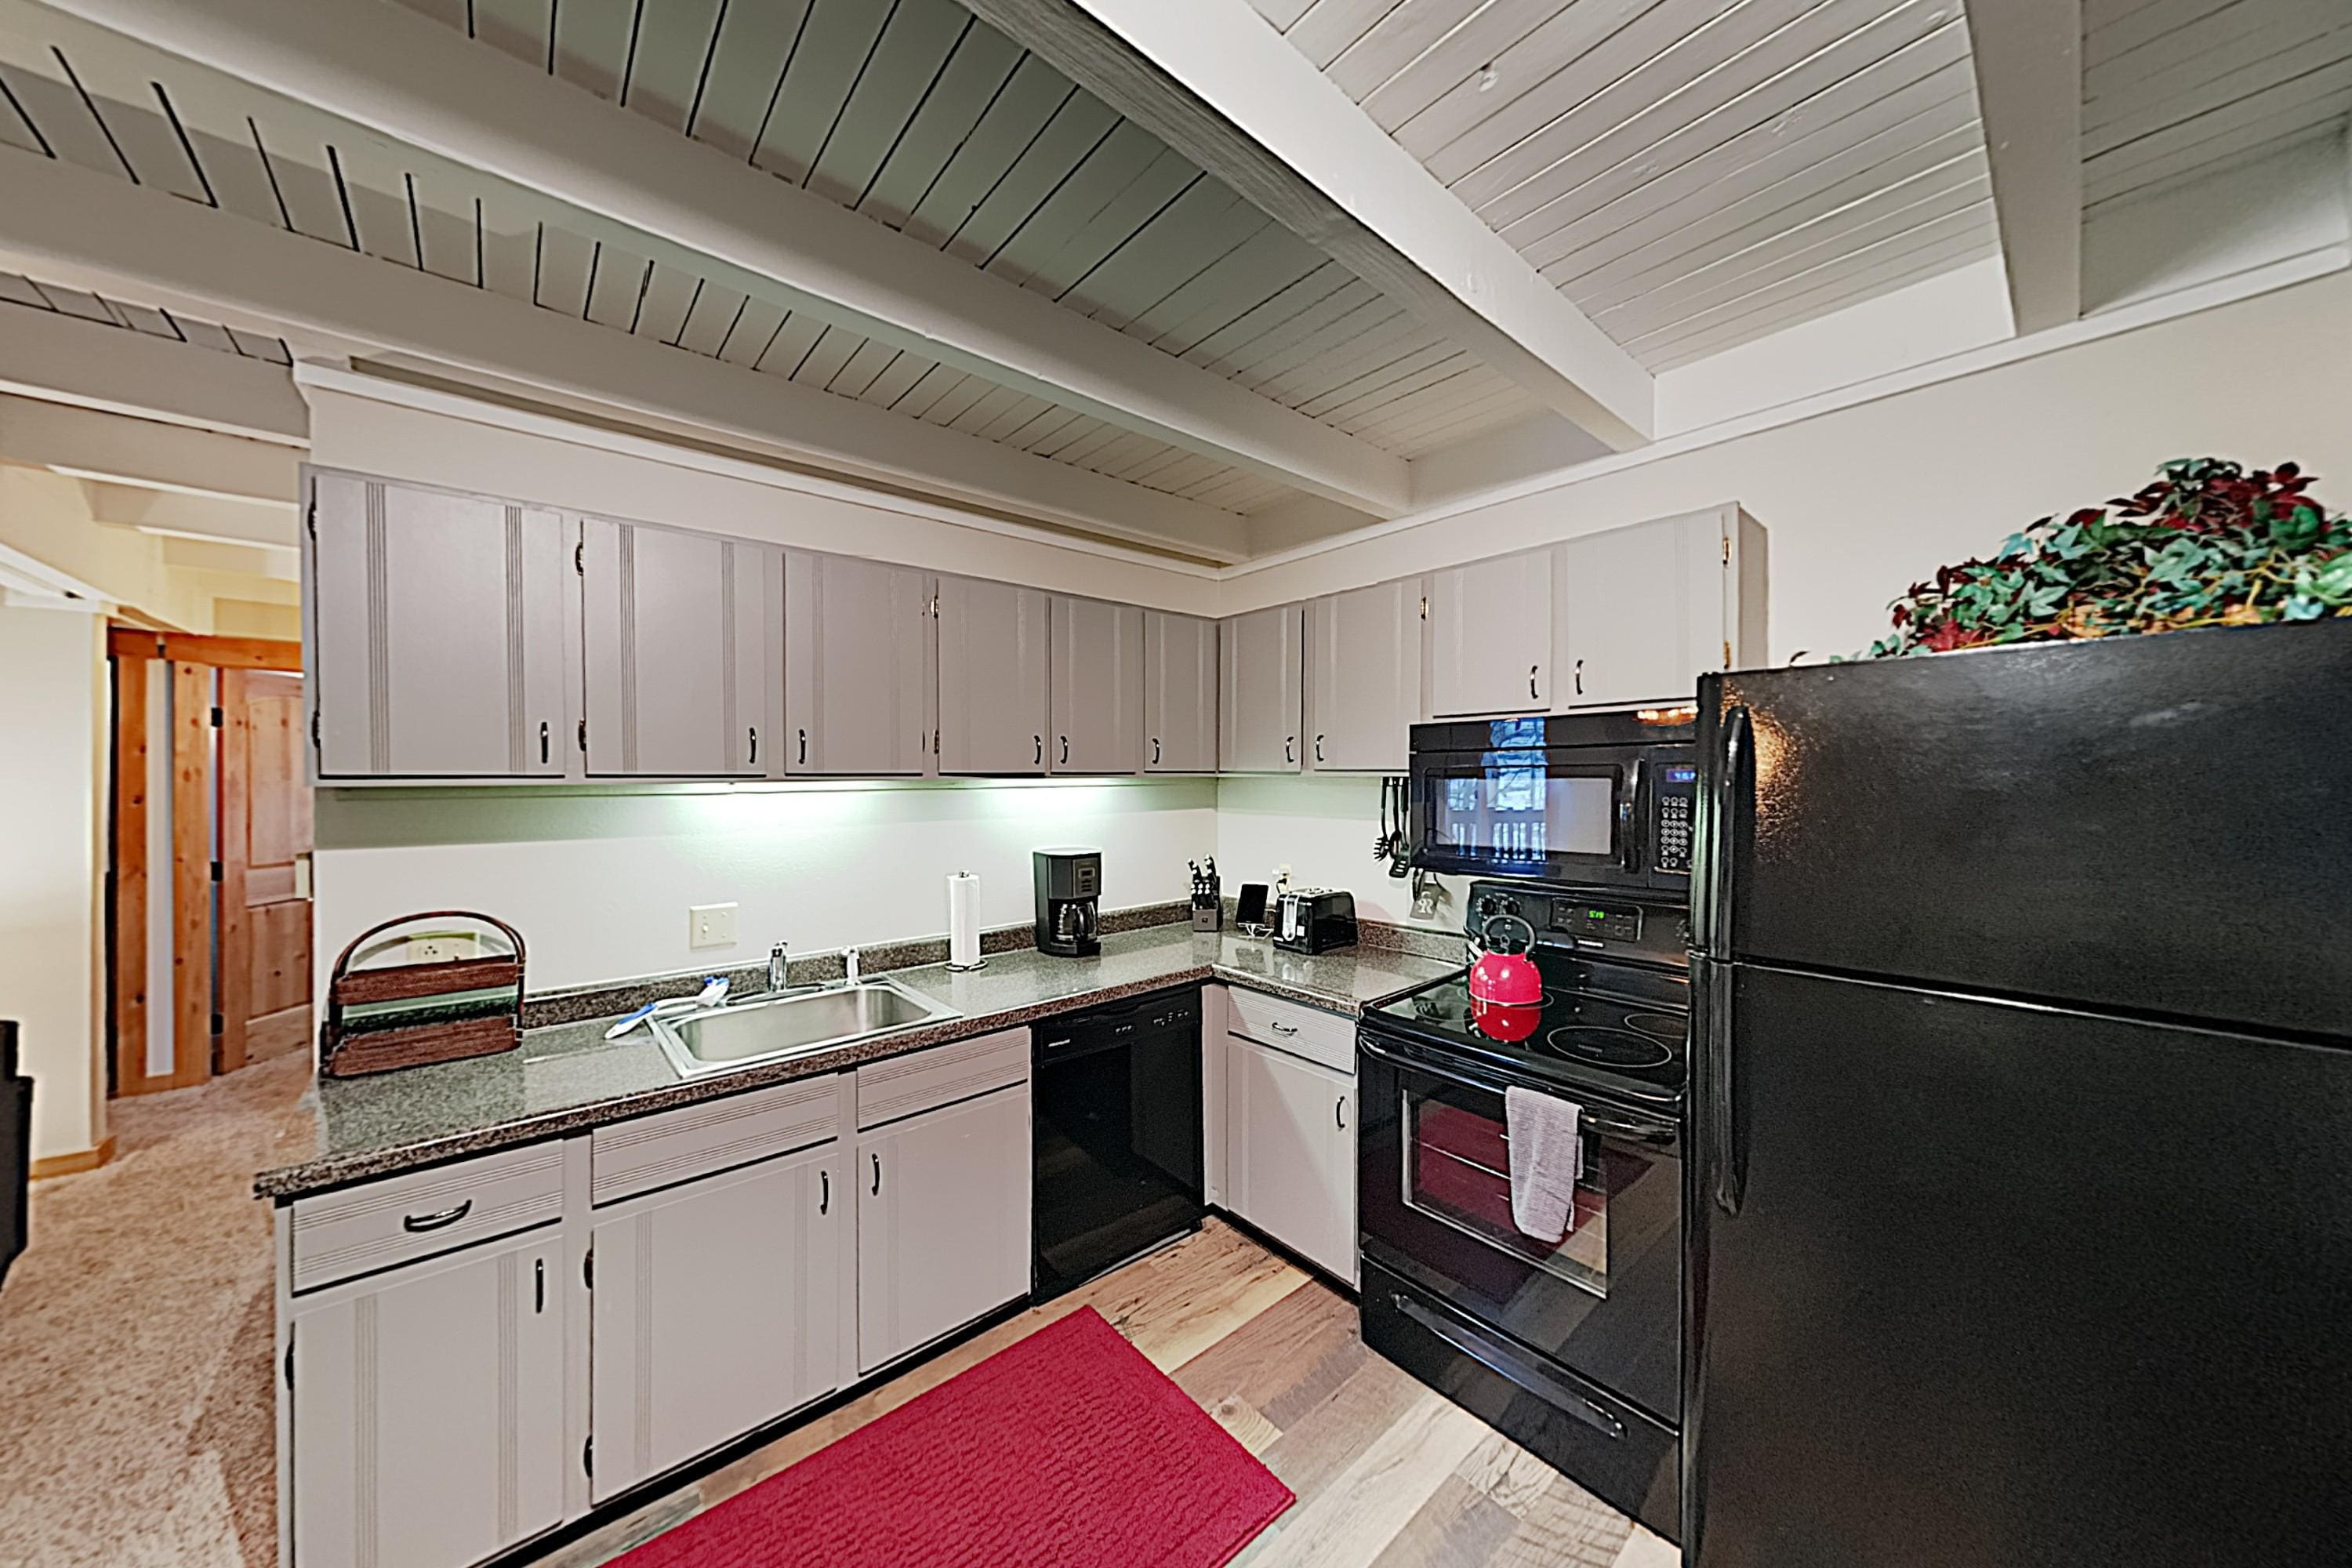 Whip up tasty meals in the well-equipped kitchen, which features a full suite of appliances and ample cookware.